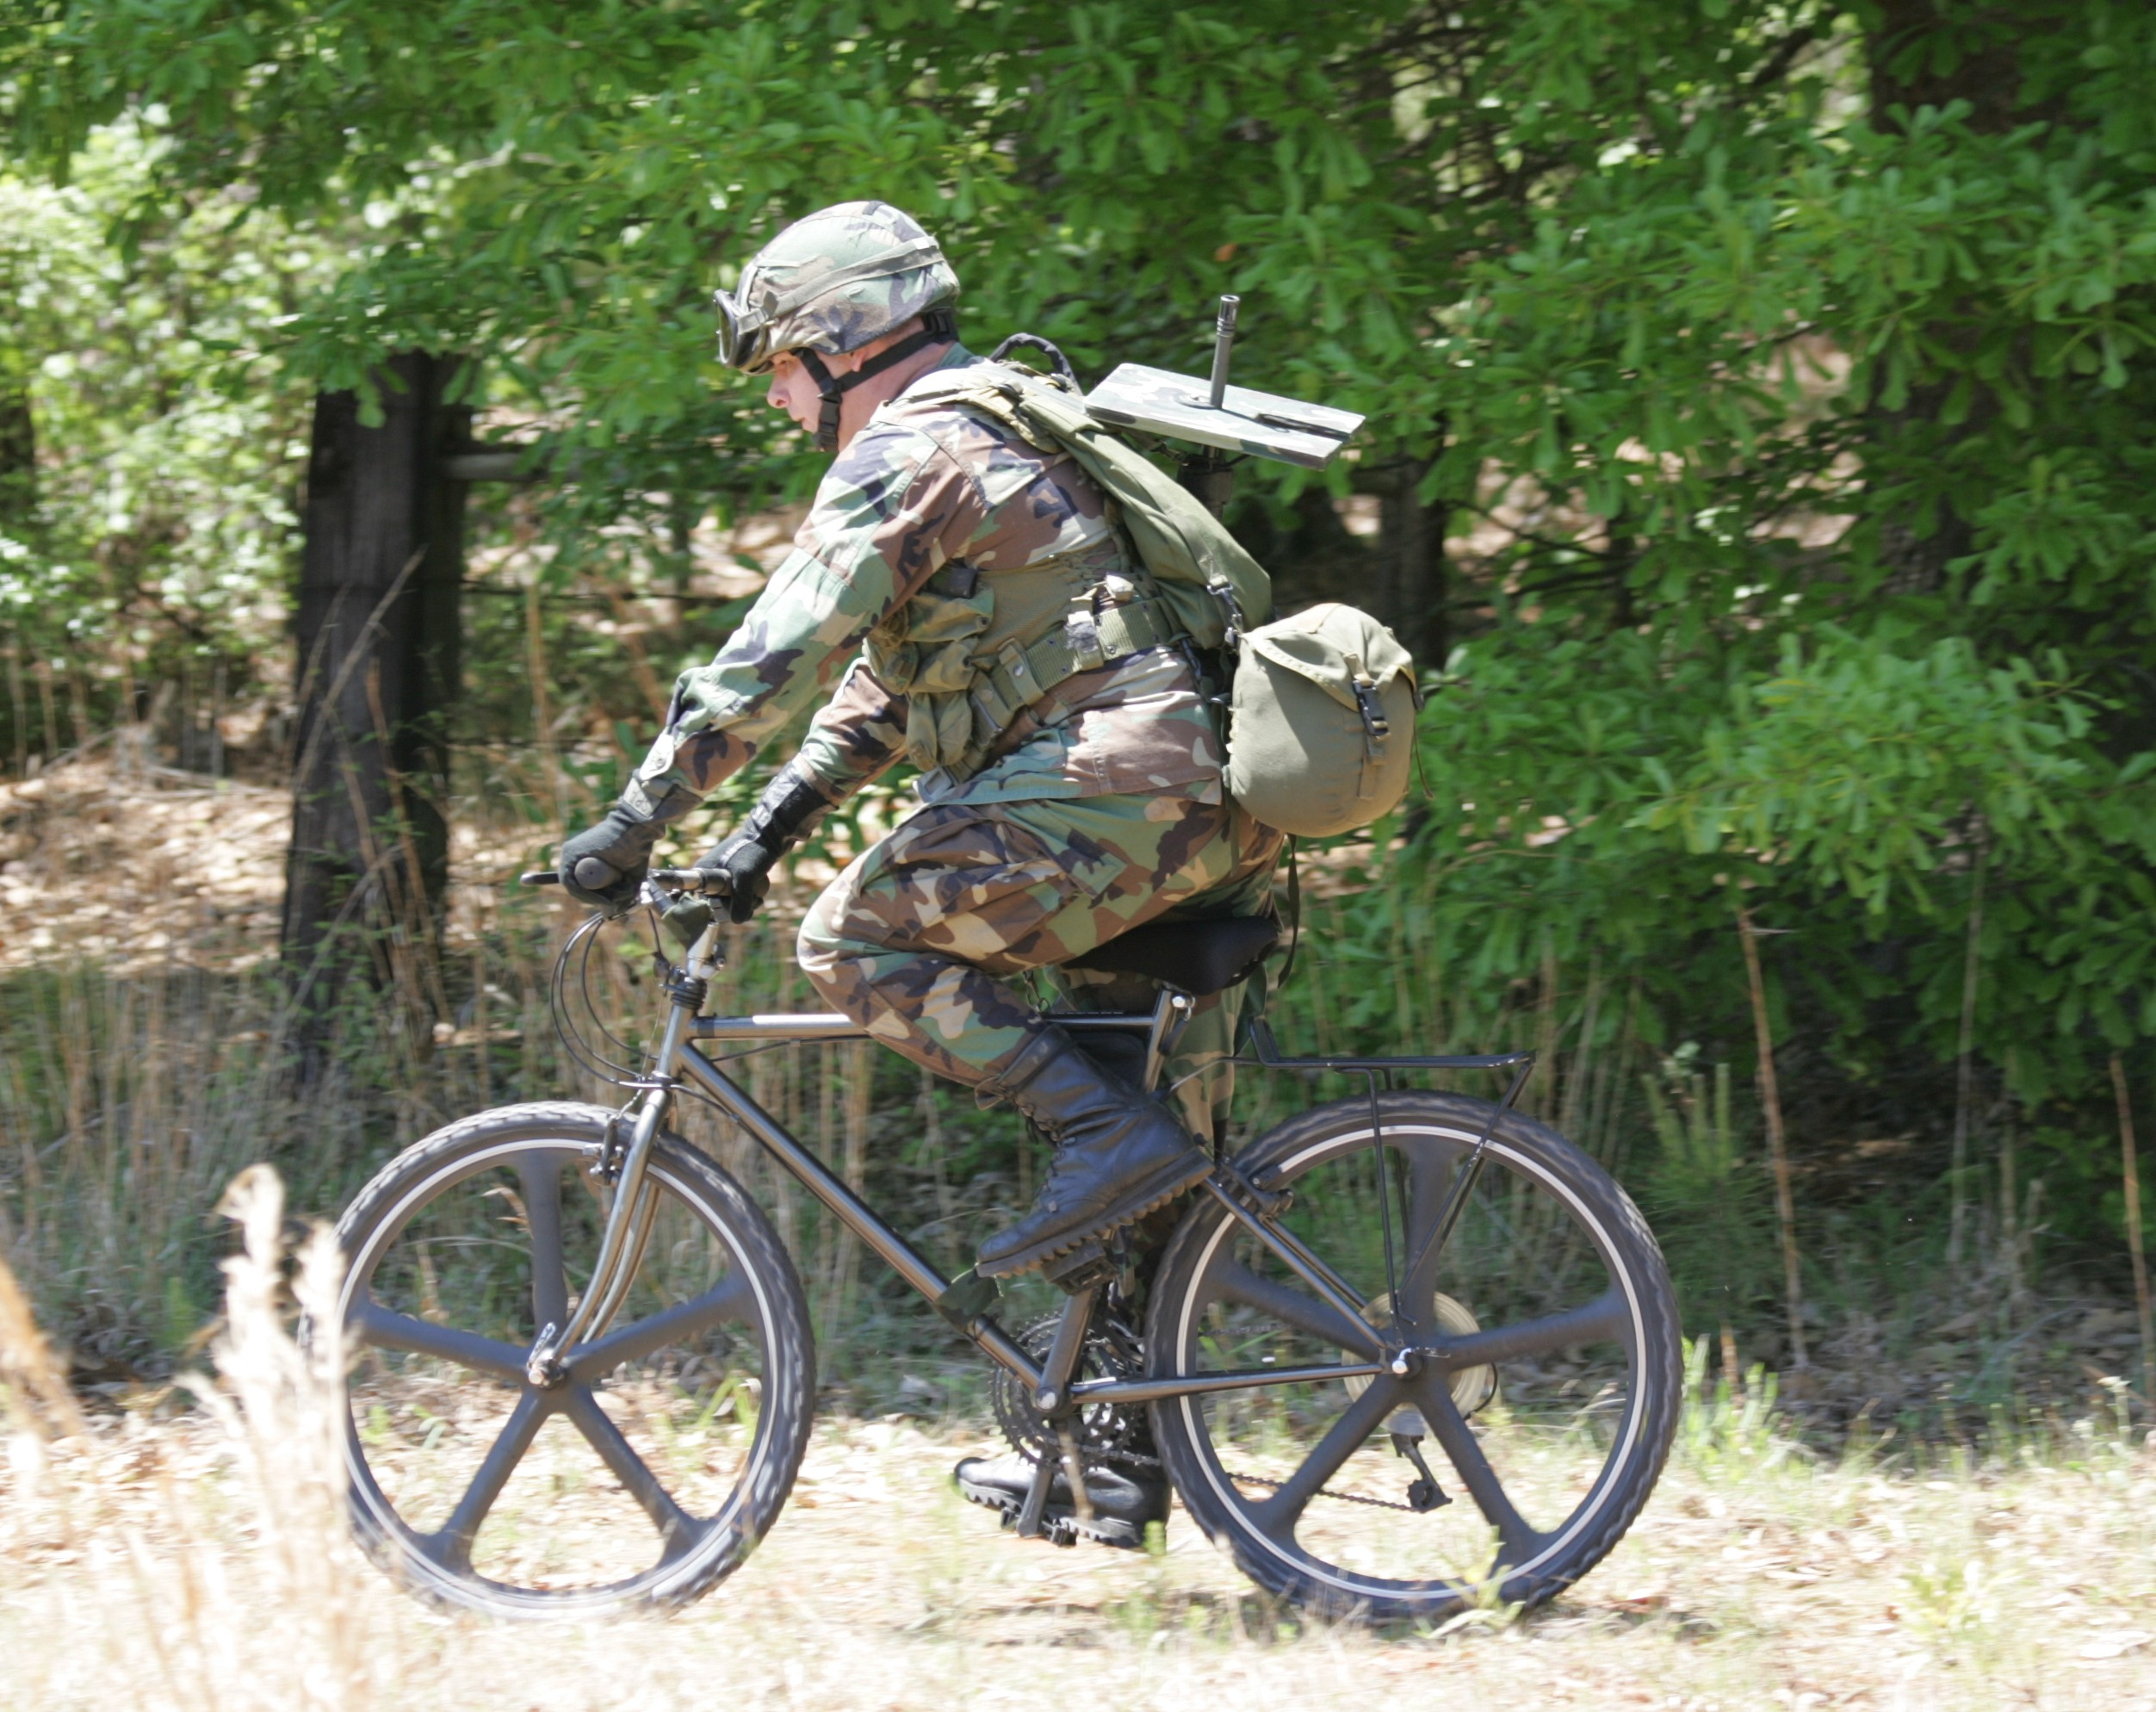 A career for triathletes youngtri a us special forces soldier tests an atb photo credit hans halberstadt via combatreform malvernweather Images